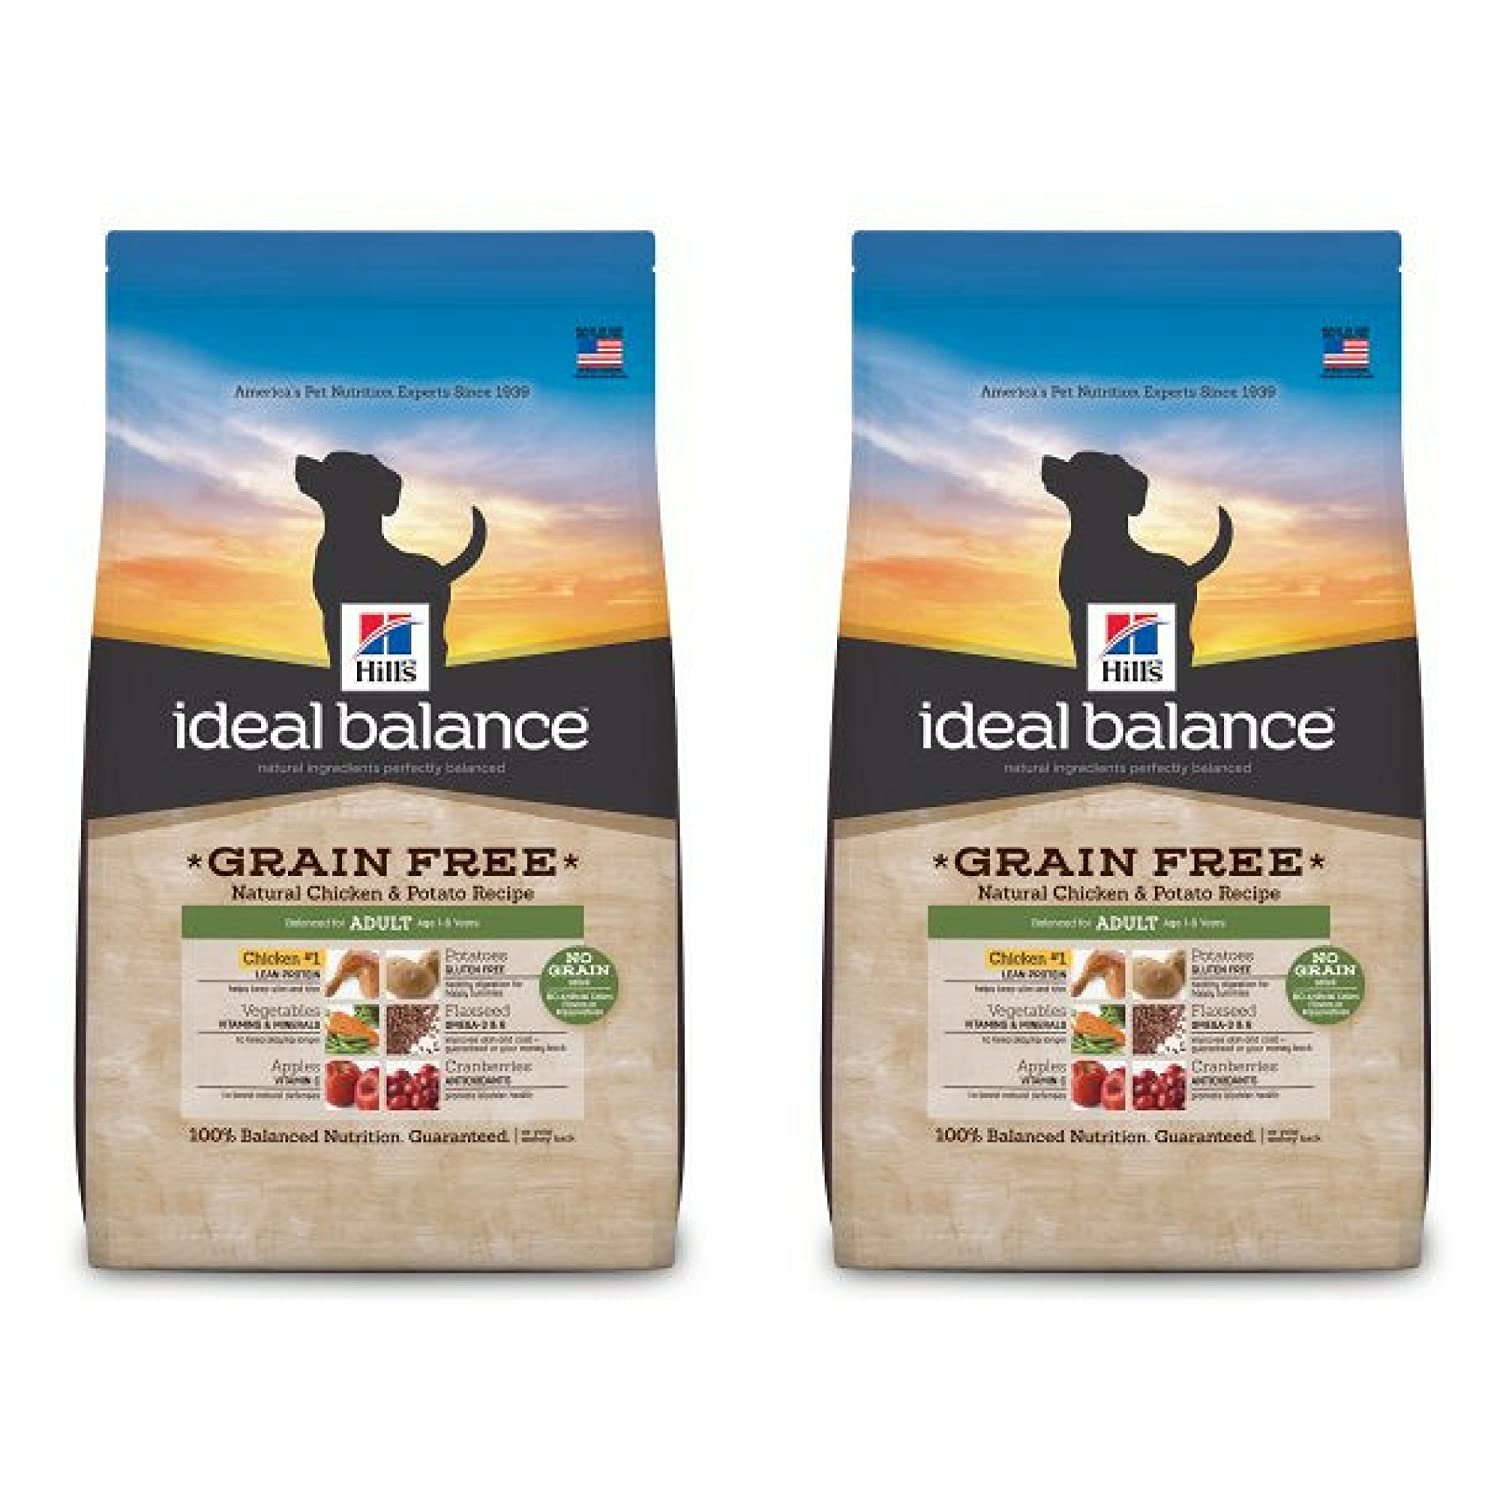 Amazoncom Hills Ideal Balance Adult Grain Free Natural Chicken